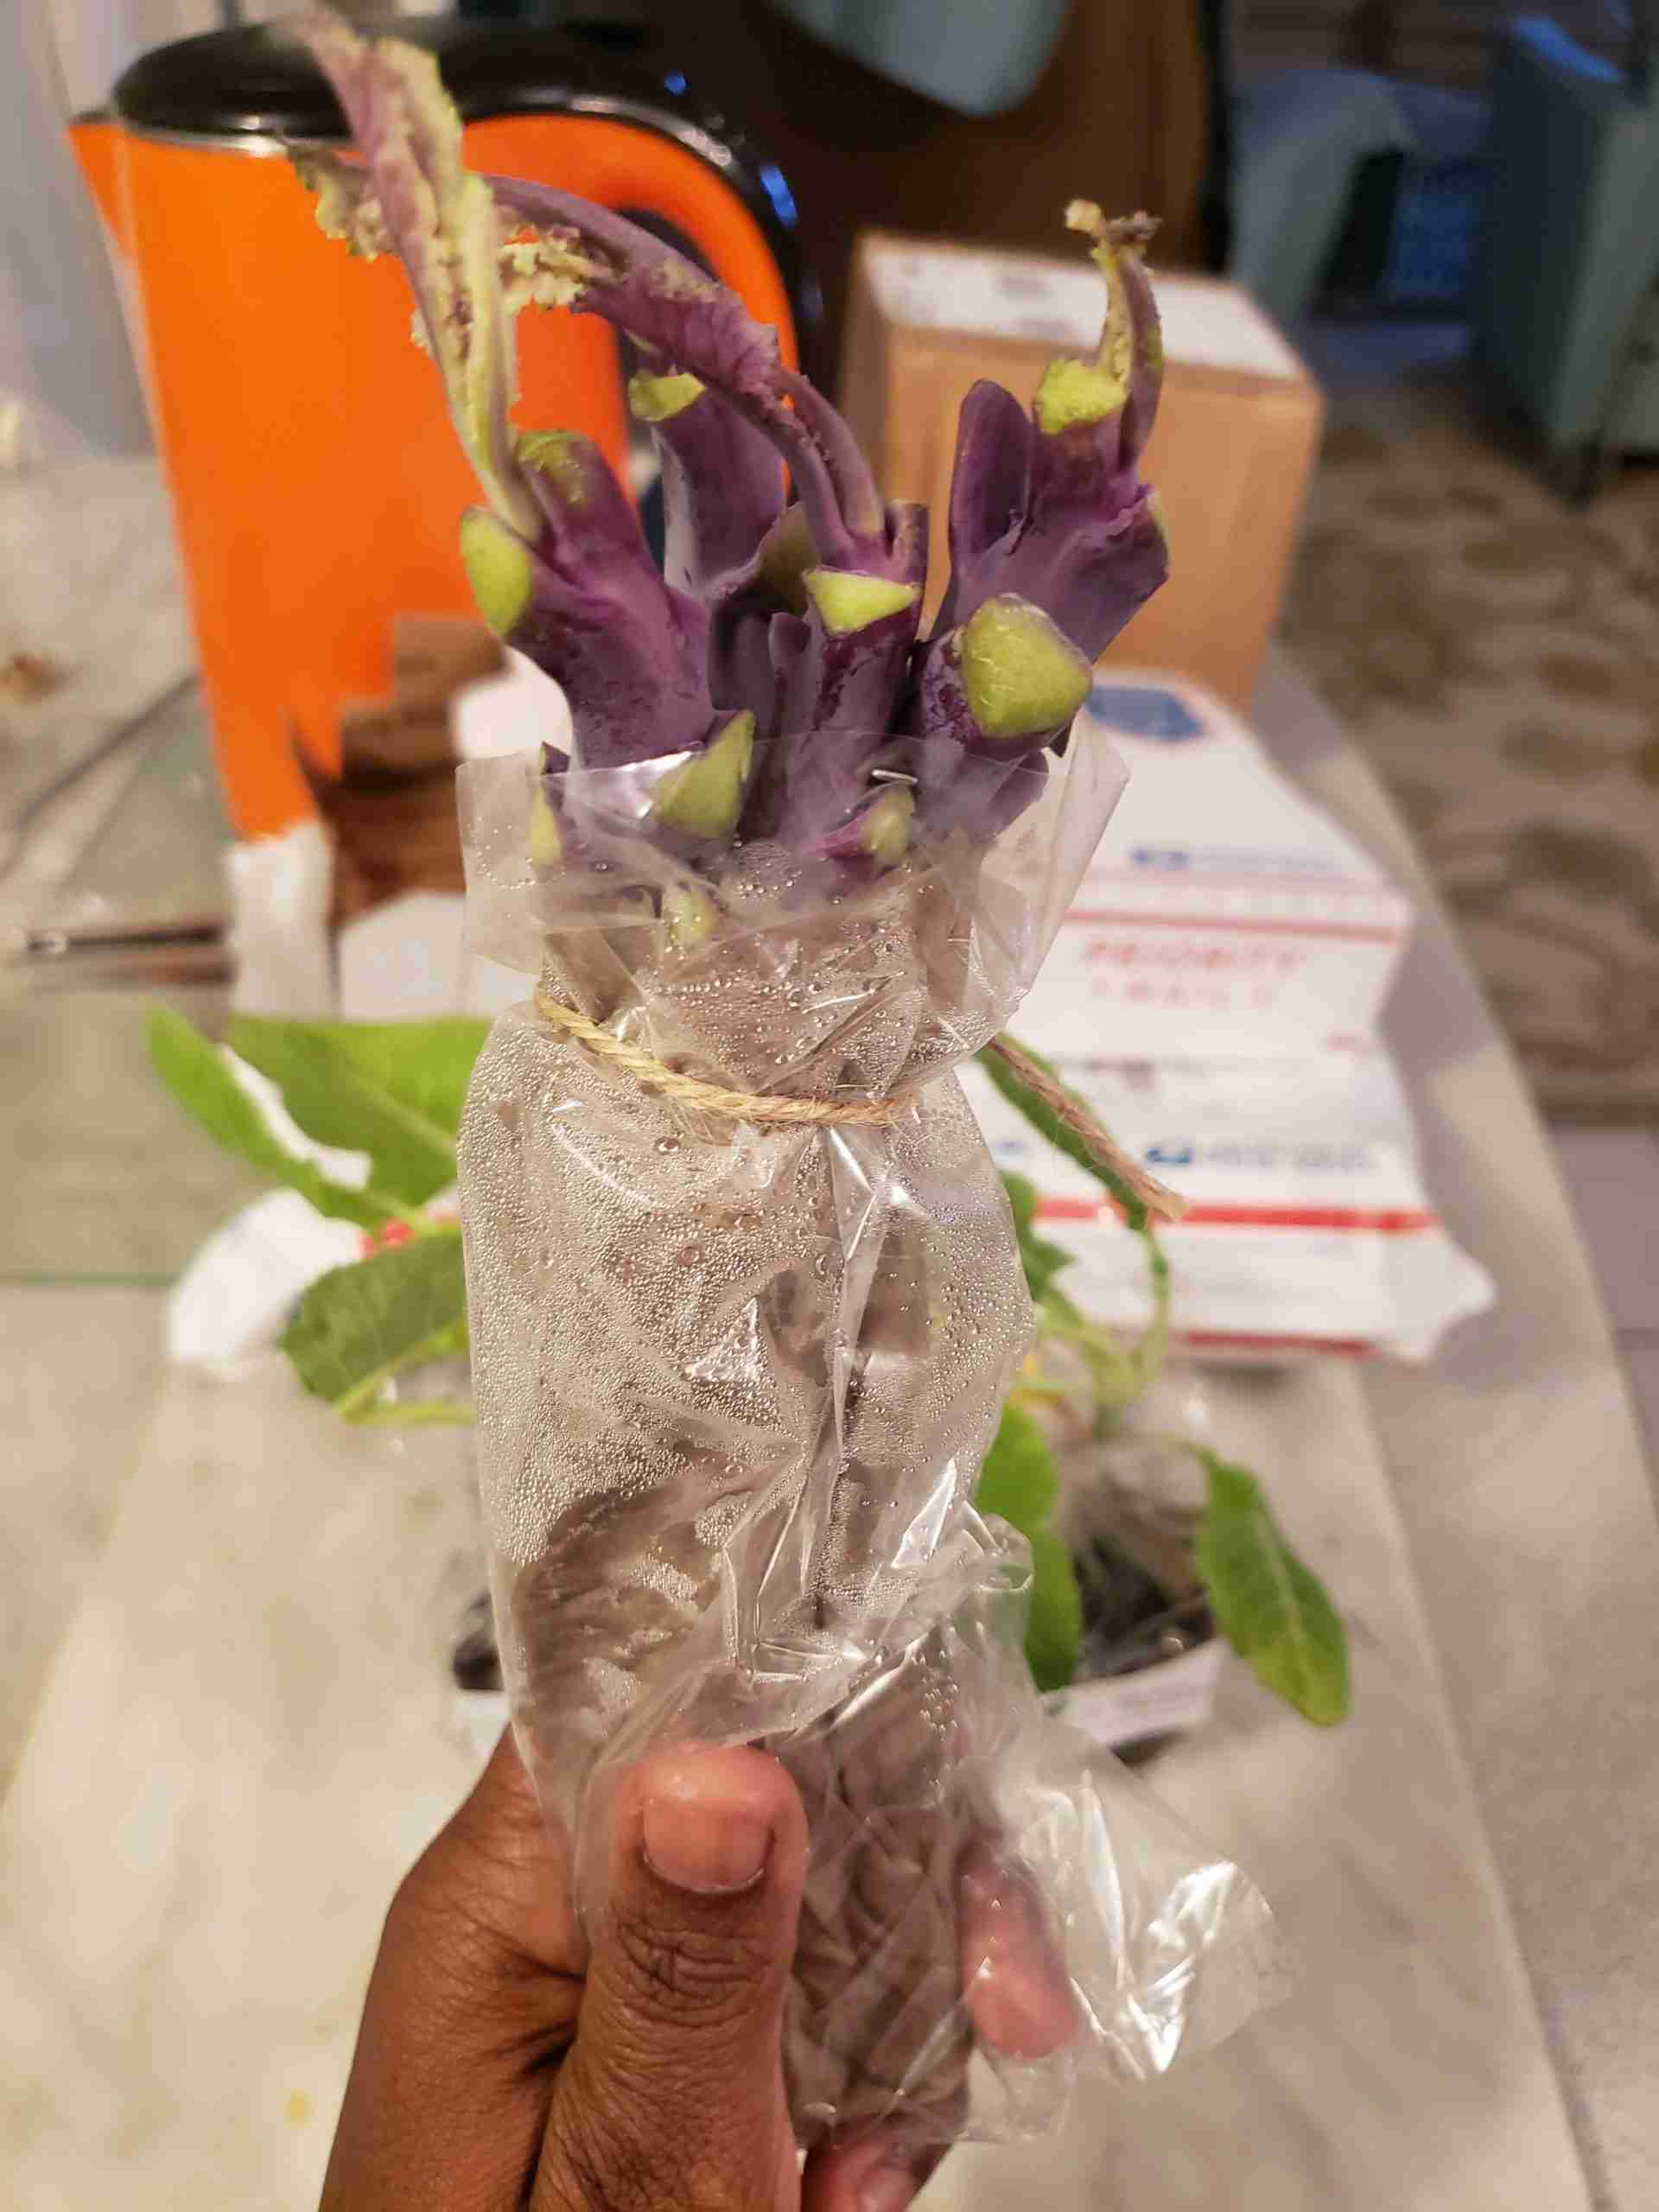 Purple Tree Collard Cuttings Wrapped in Plastic From Online Plant Seller